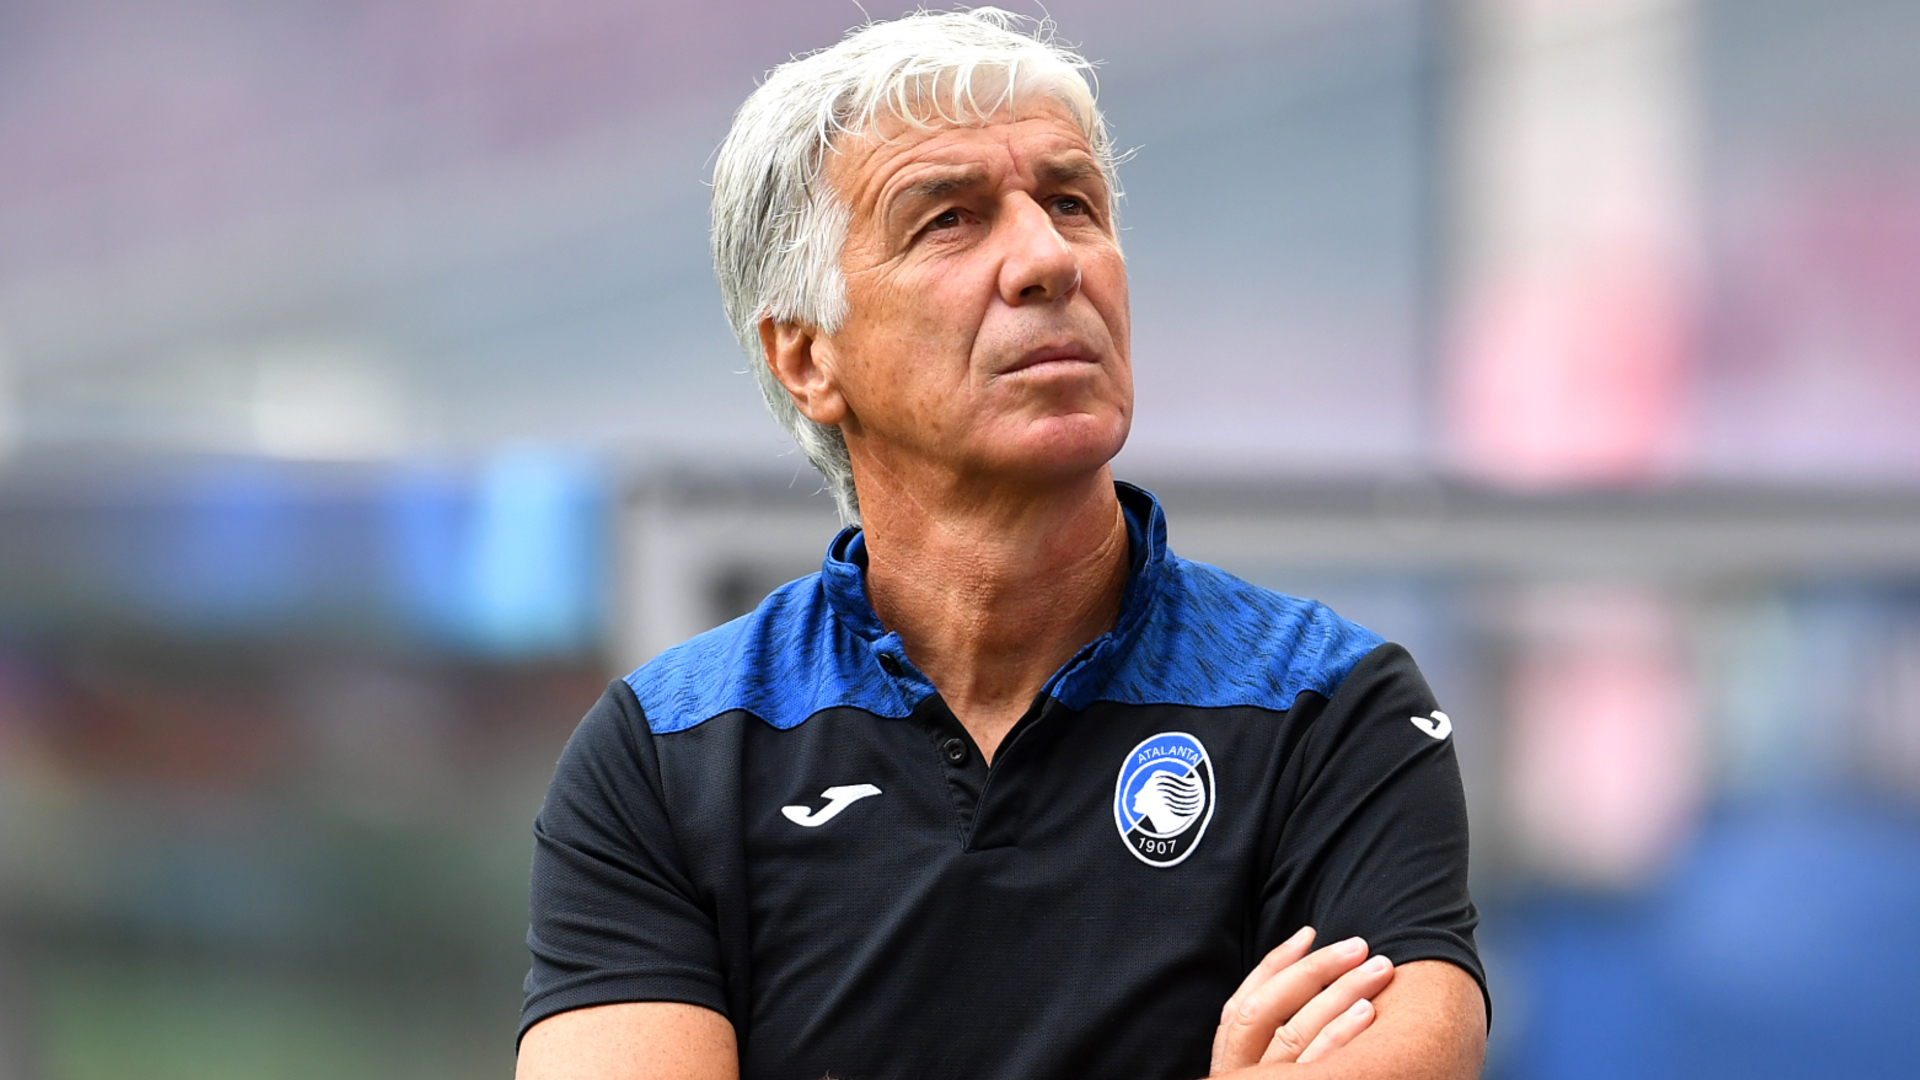 Atalanta have a responsibility not to disappoint against Neymar and PSG, says Gasperini